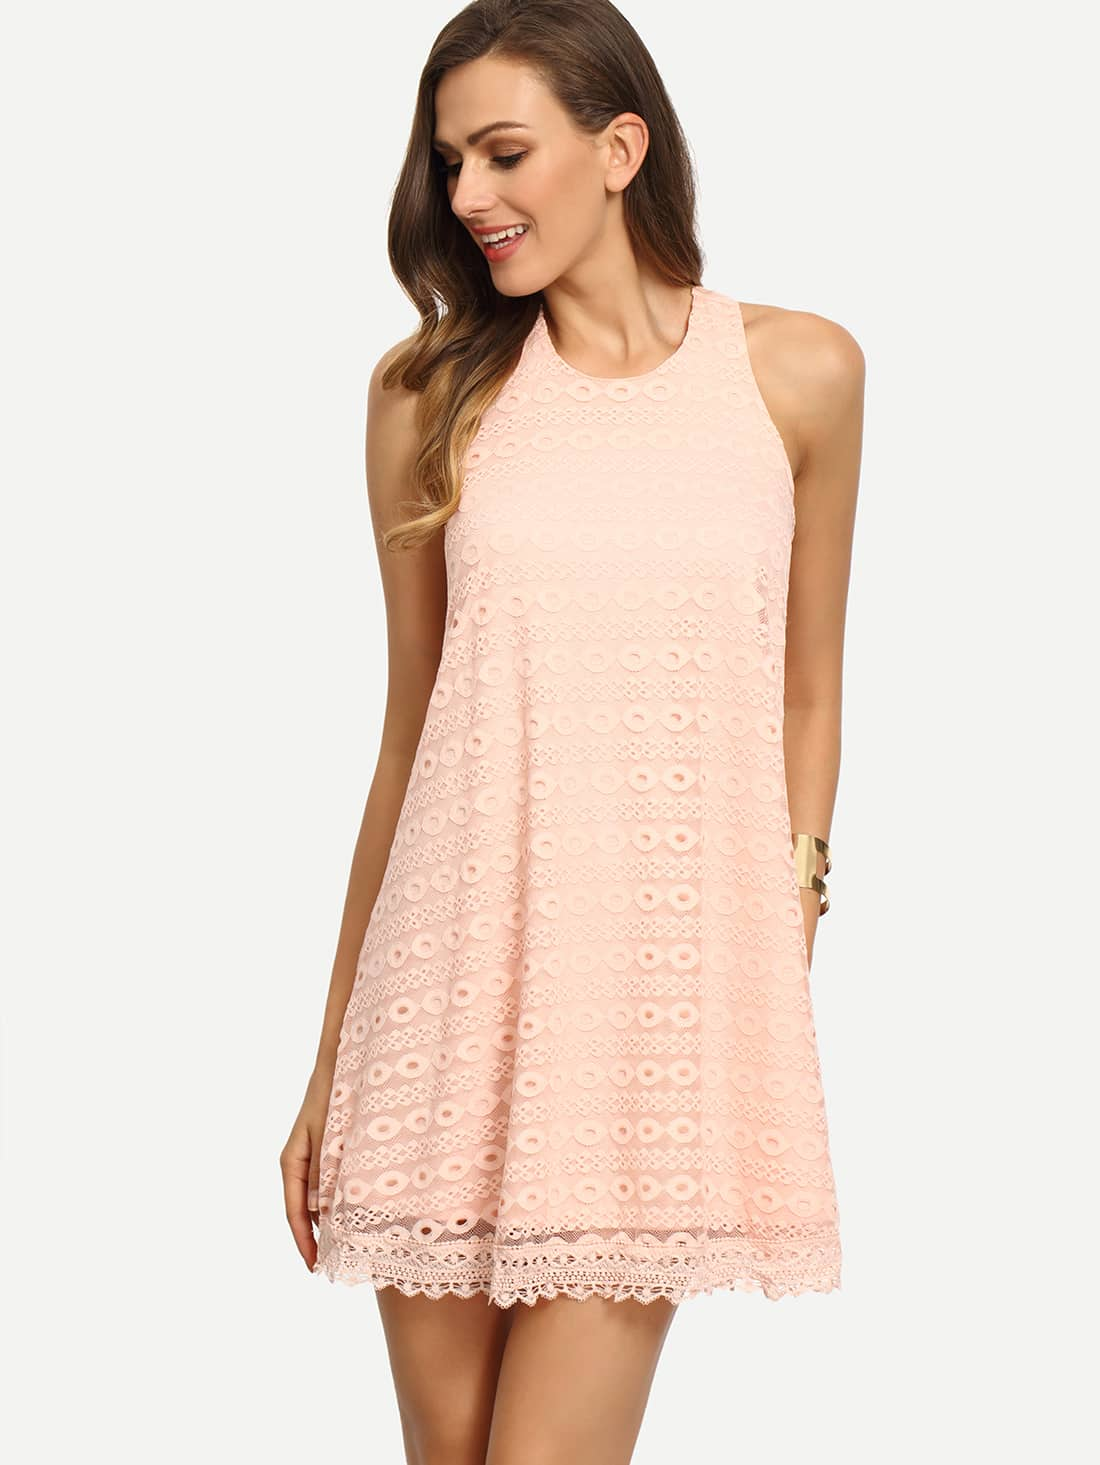 Pink Sleeveless Hollow Shift Lace DressPink Sleeveless Hollow Shift Lace Dress<br><br>color: Pink<br>size: L